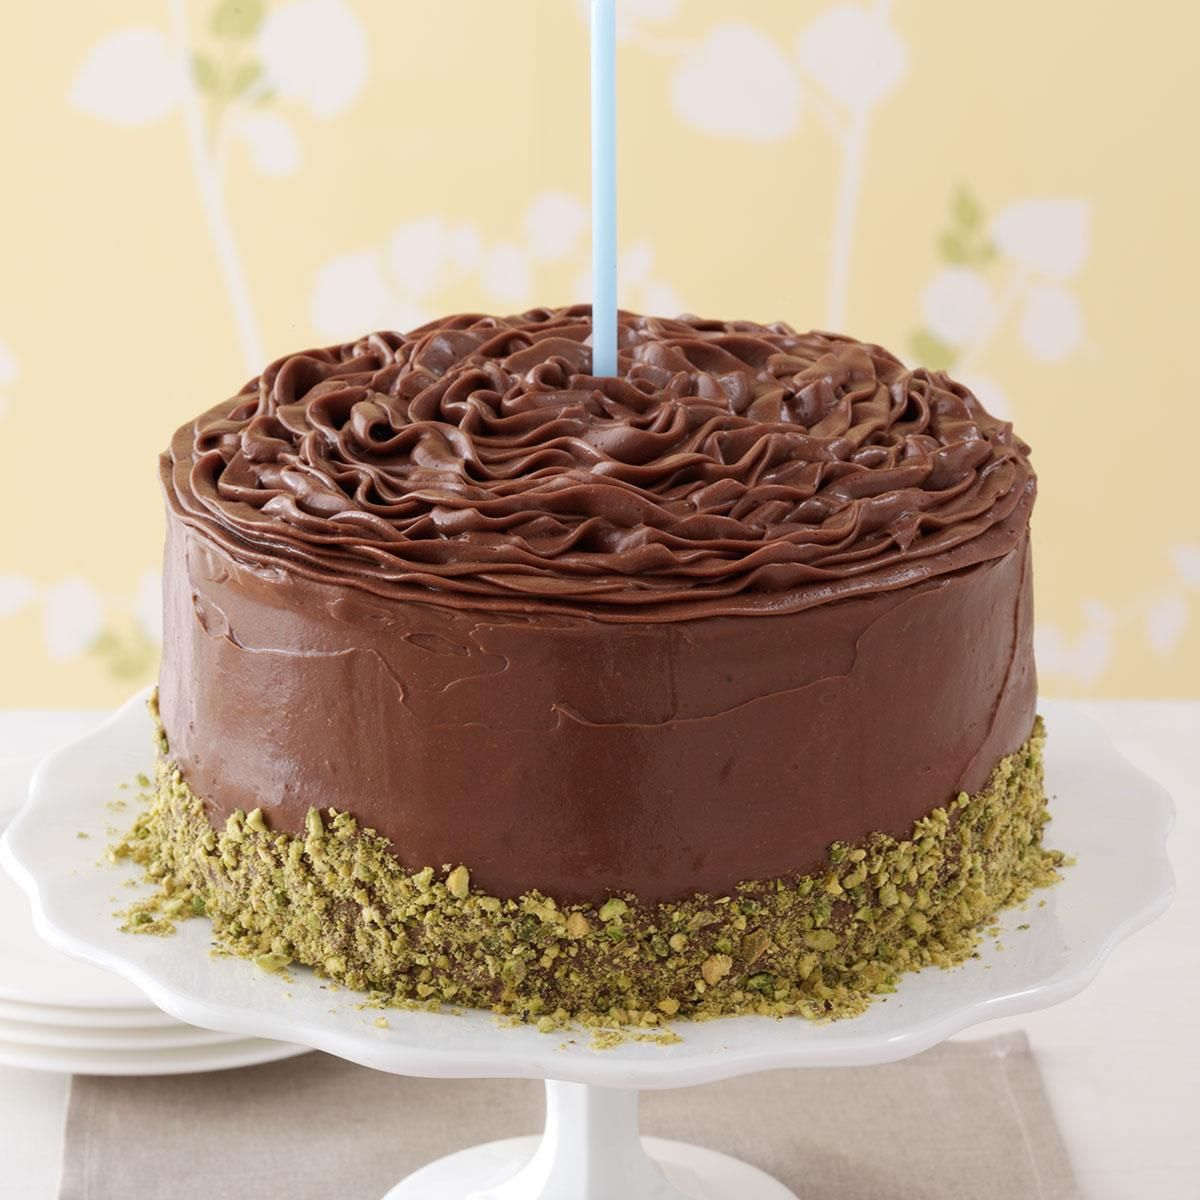 Banana Cake with Chocolate Frosting | Recipe | Chocolate frosting ...